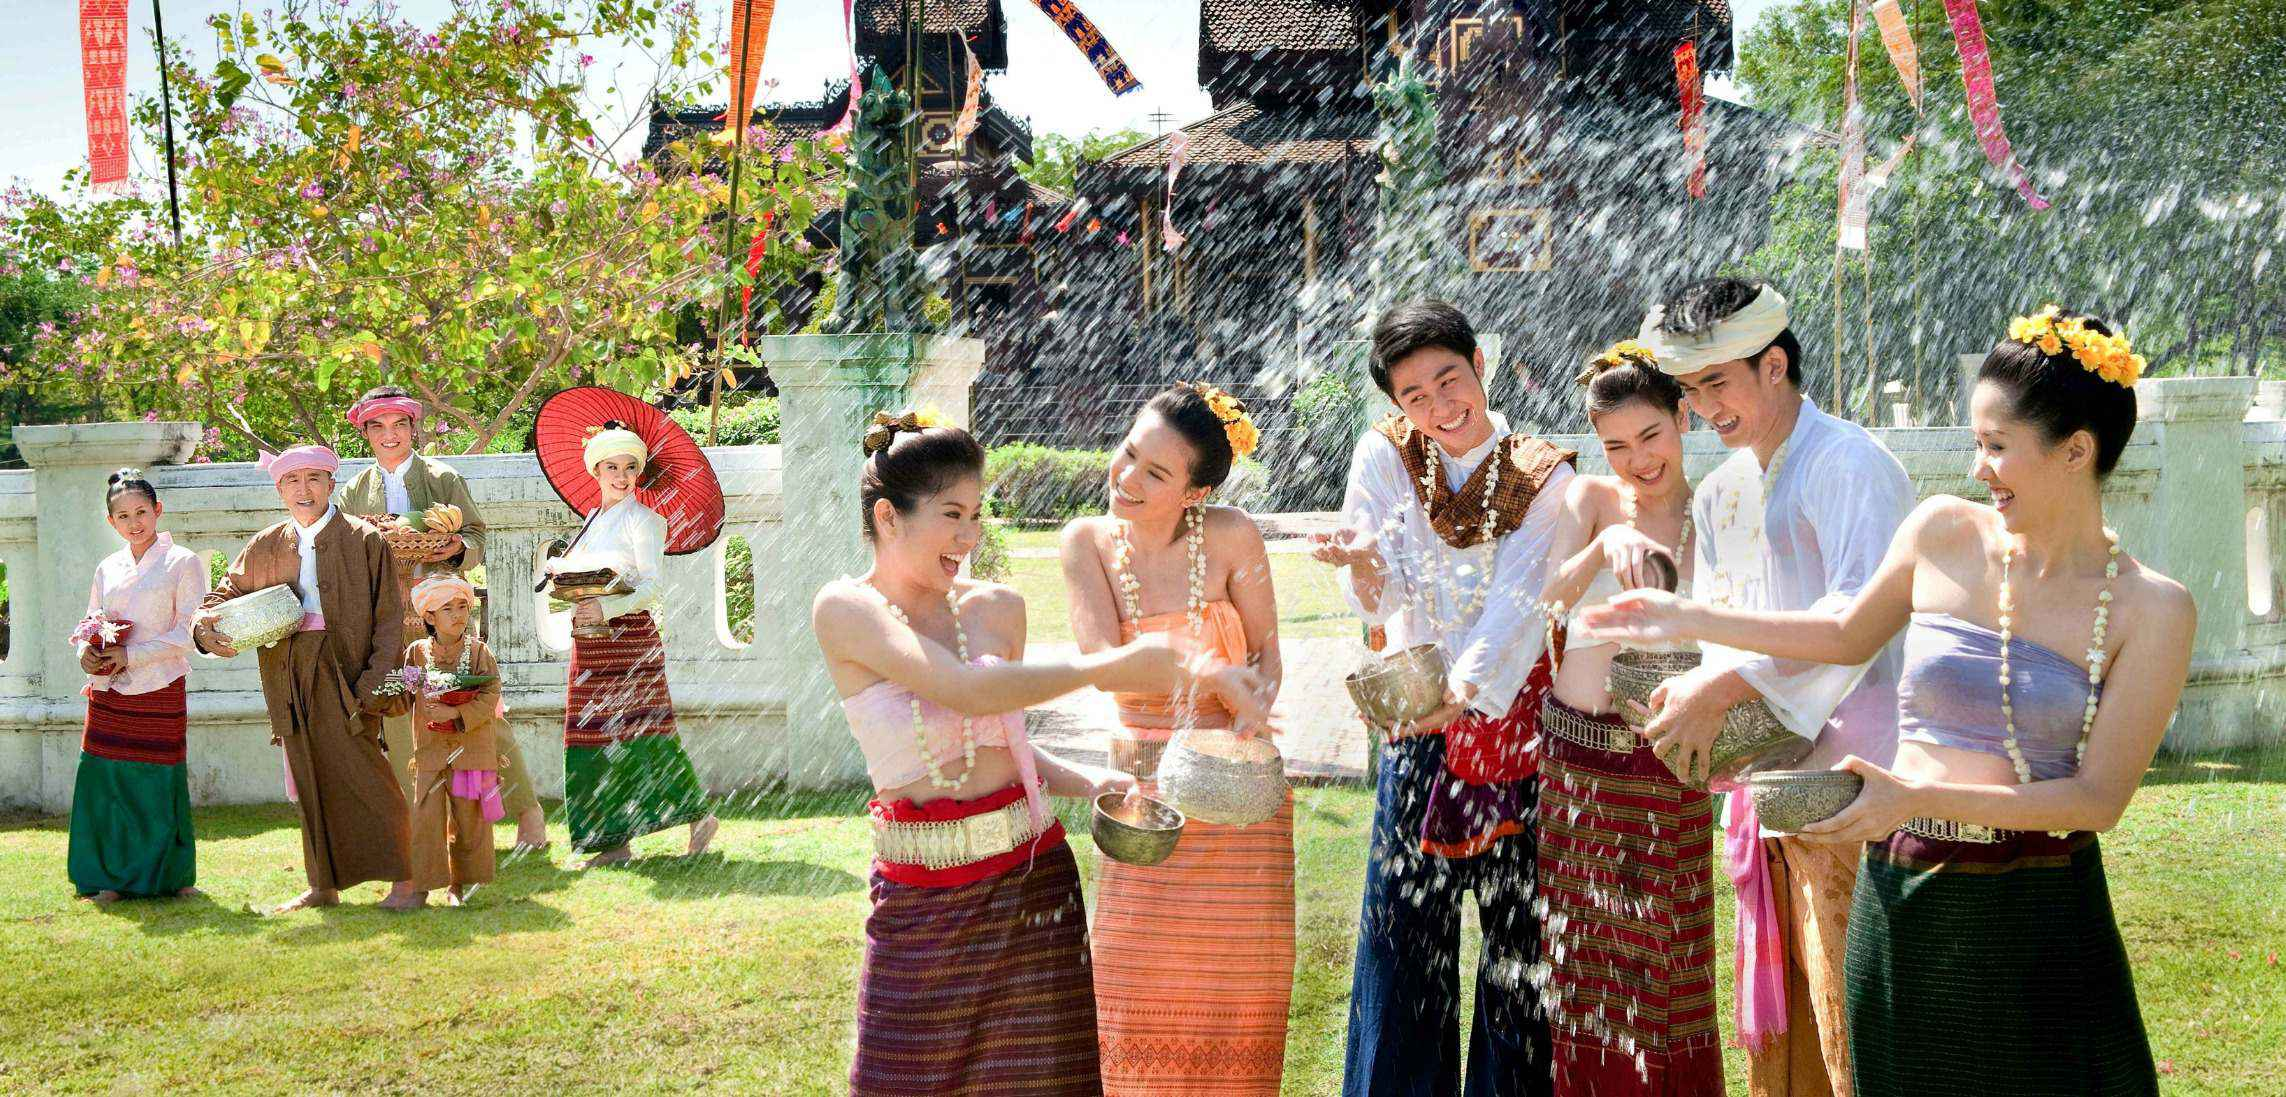 Songkran-Thai-New-Year-Festival-saovietravel